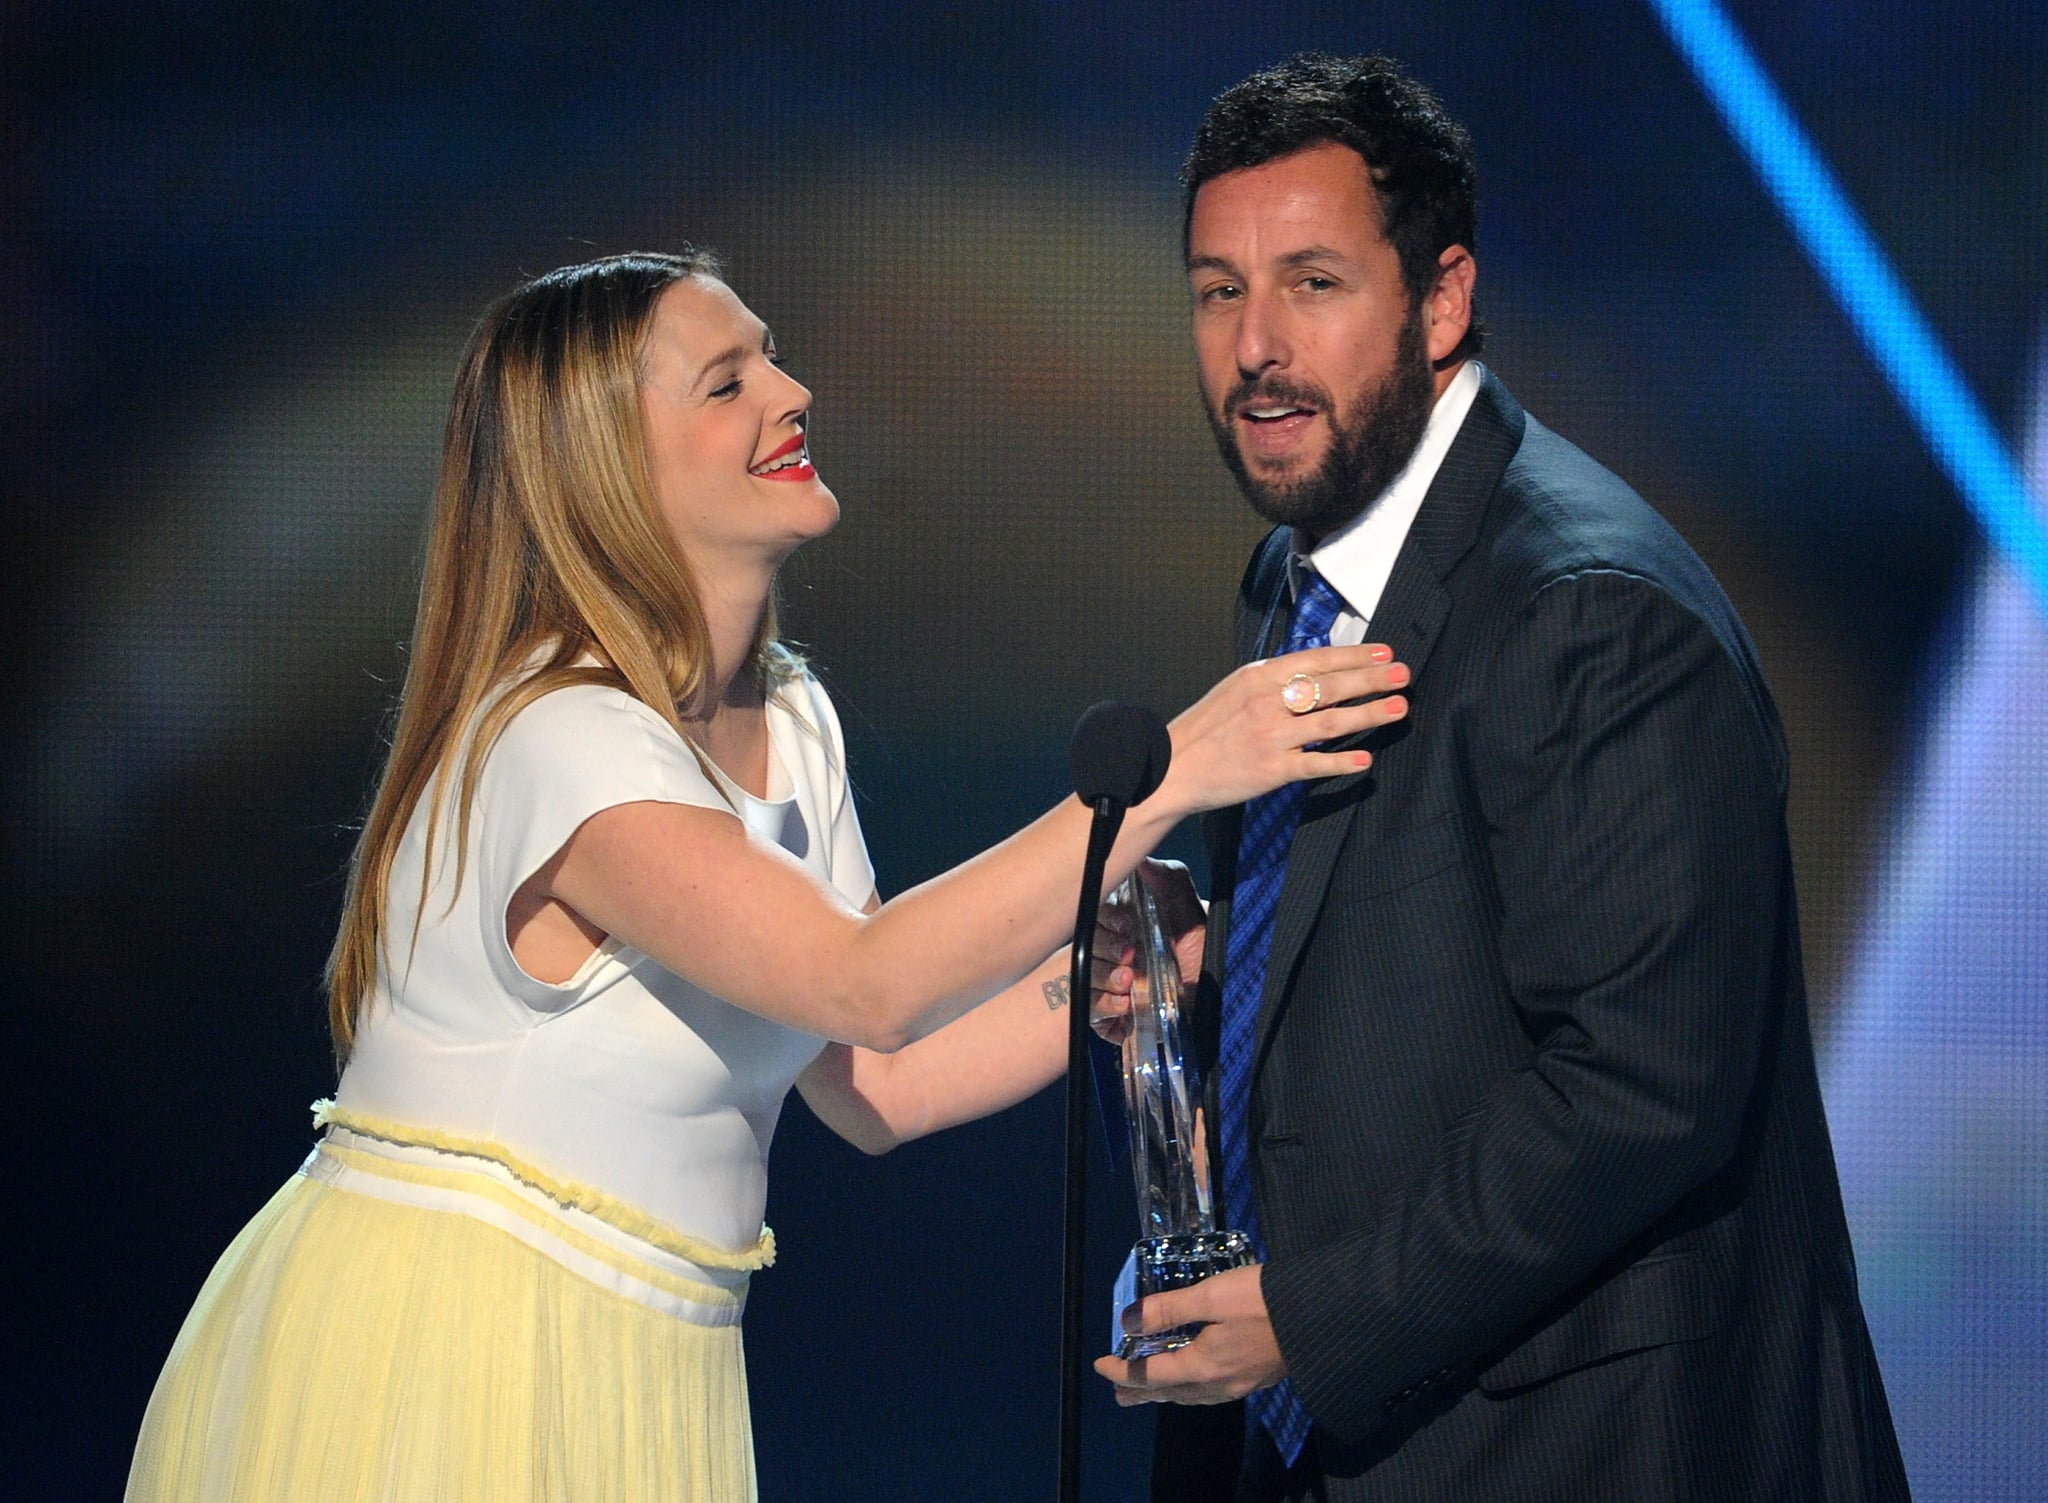 Drew Barrymore joked with Adam Sandler when she presented him with his award.